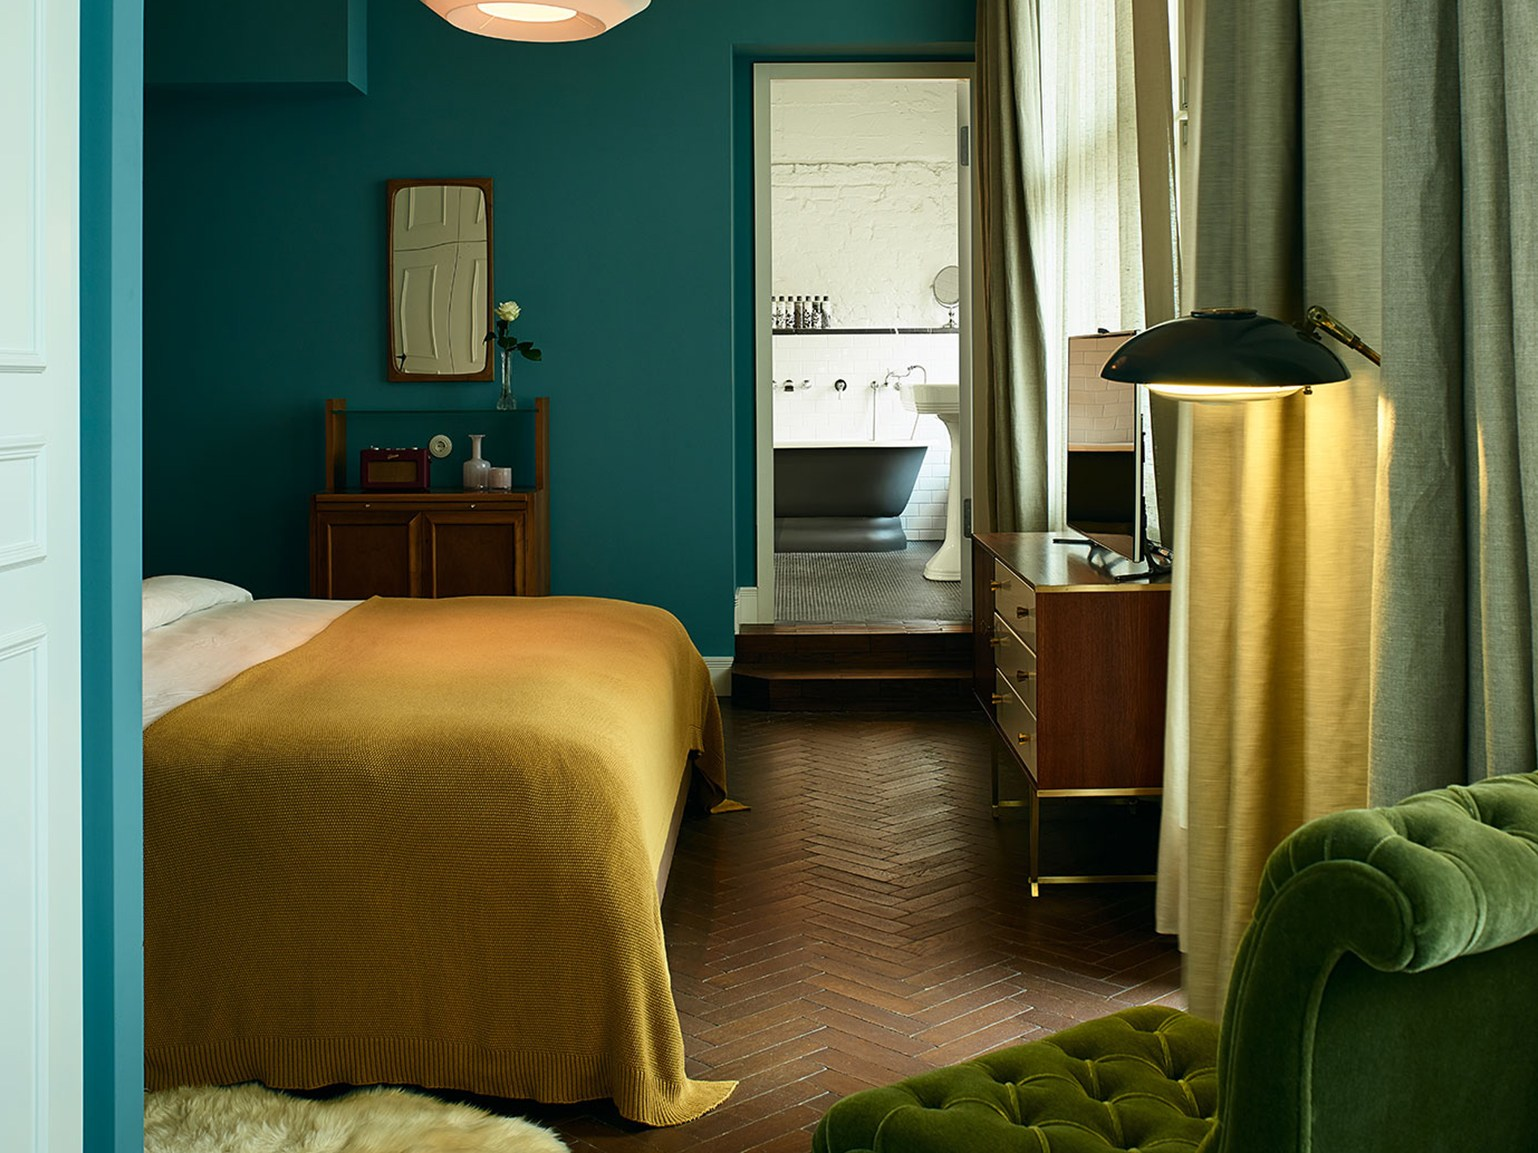 A bedroom with blue walls.